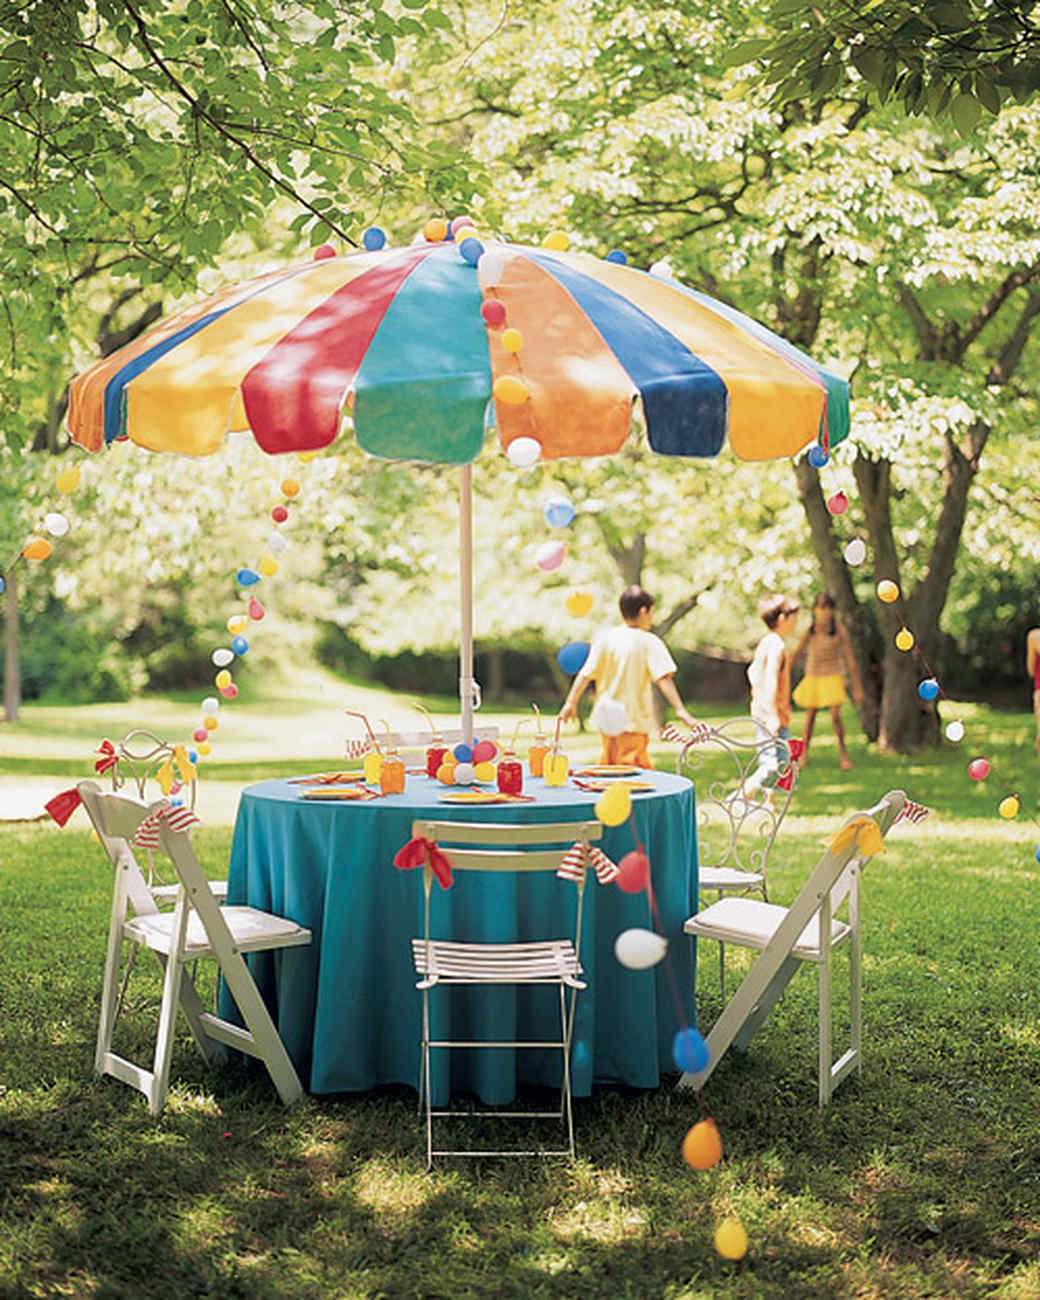 Hairy Birthday Party Ideas Martha Stewart Backyard Graduation Party Ideas Pinterest Backyard Engagement Party Ideas Pinterest outdoor Backyard Party Ideas Pinterest